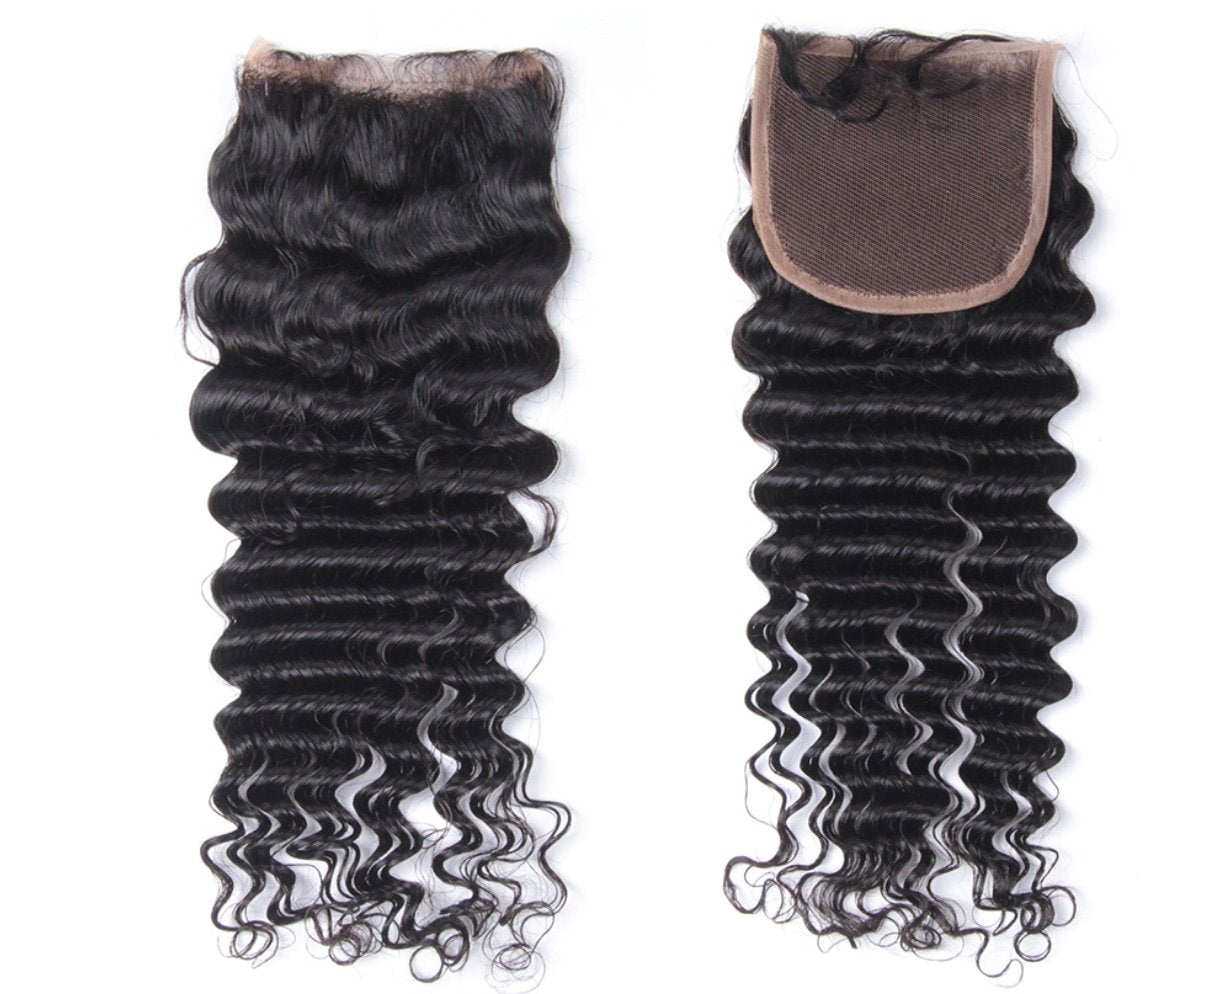 PERUVIAN DEEP WAVE CLOSURE